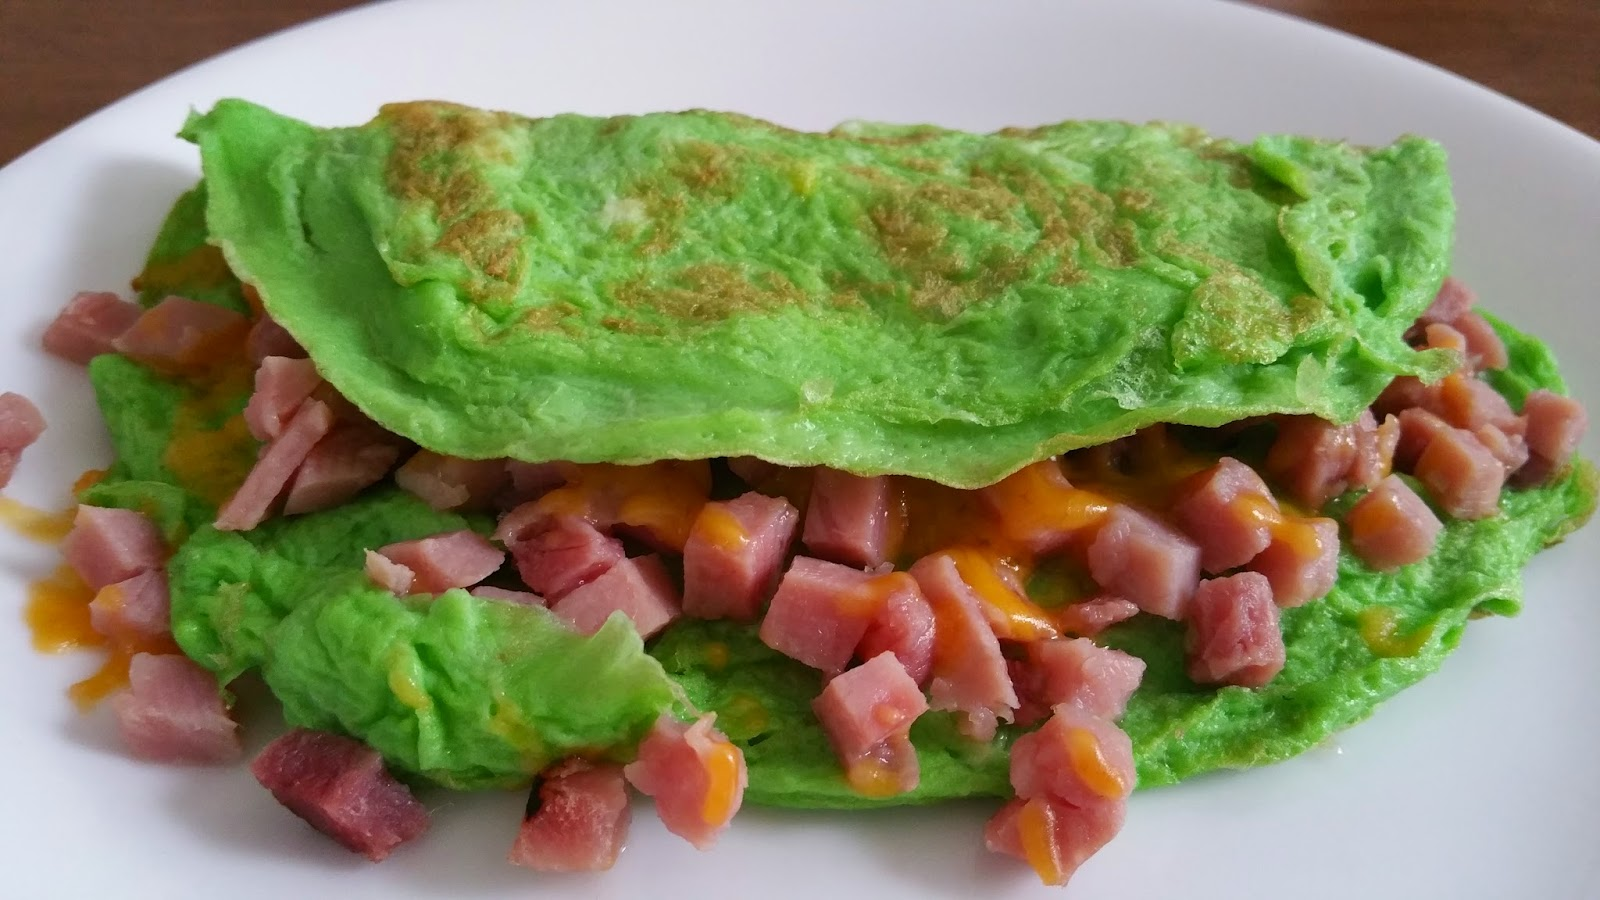 ... Author/Blogger: Seuss-Inspired Green Eggs and Ham and Cheese Omelet